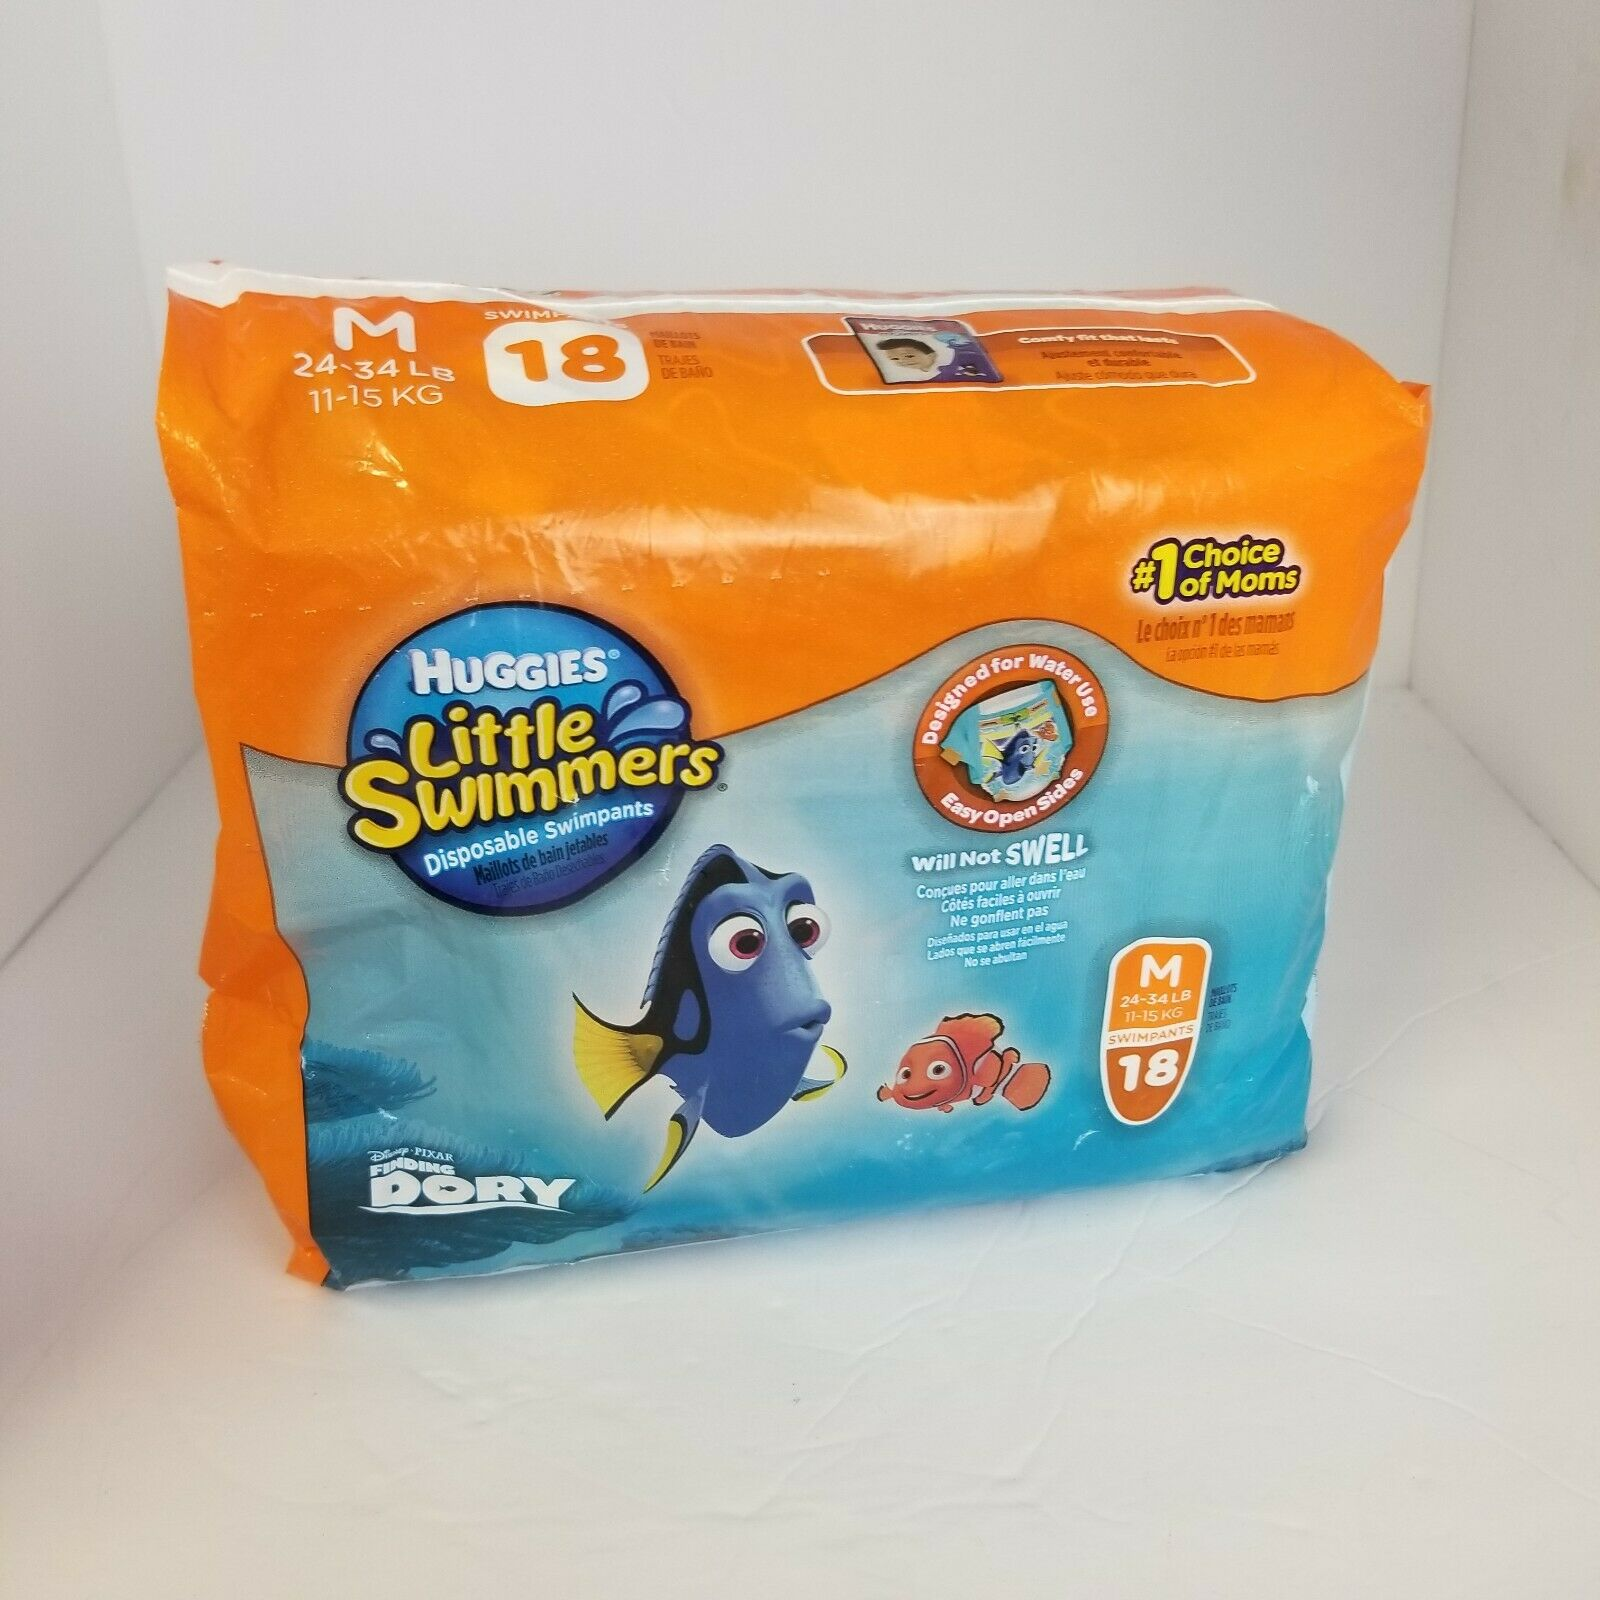 Huggies Little Swimmers Size M 24-34 Pounds 18 Count Disposable Swimpants New